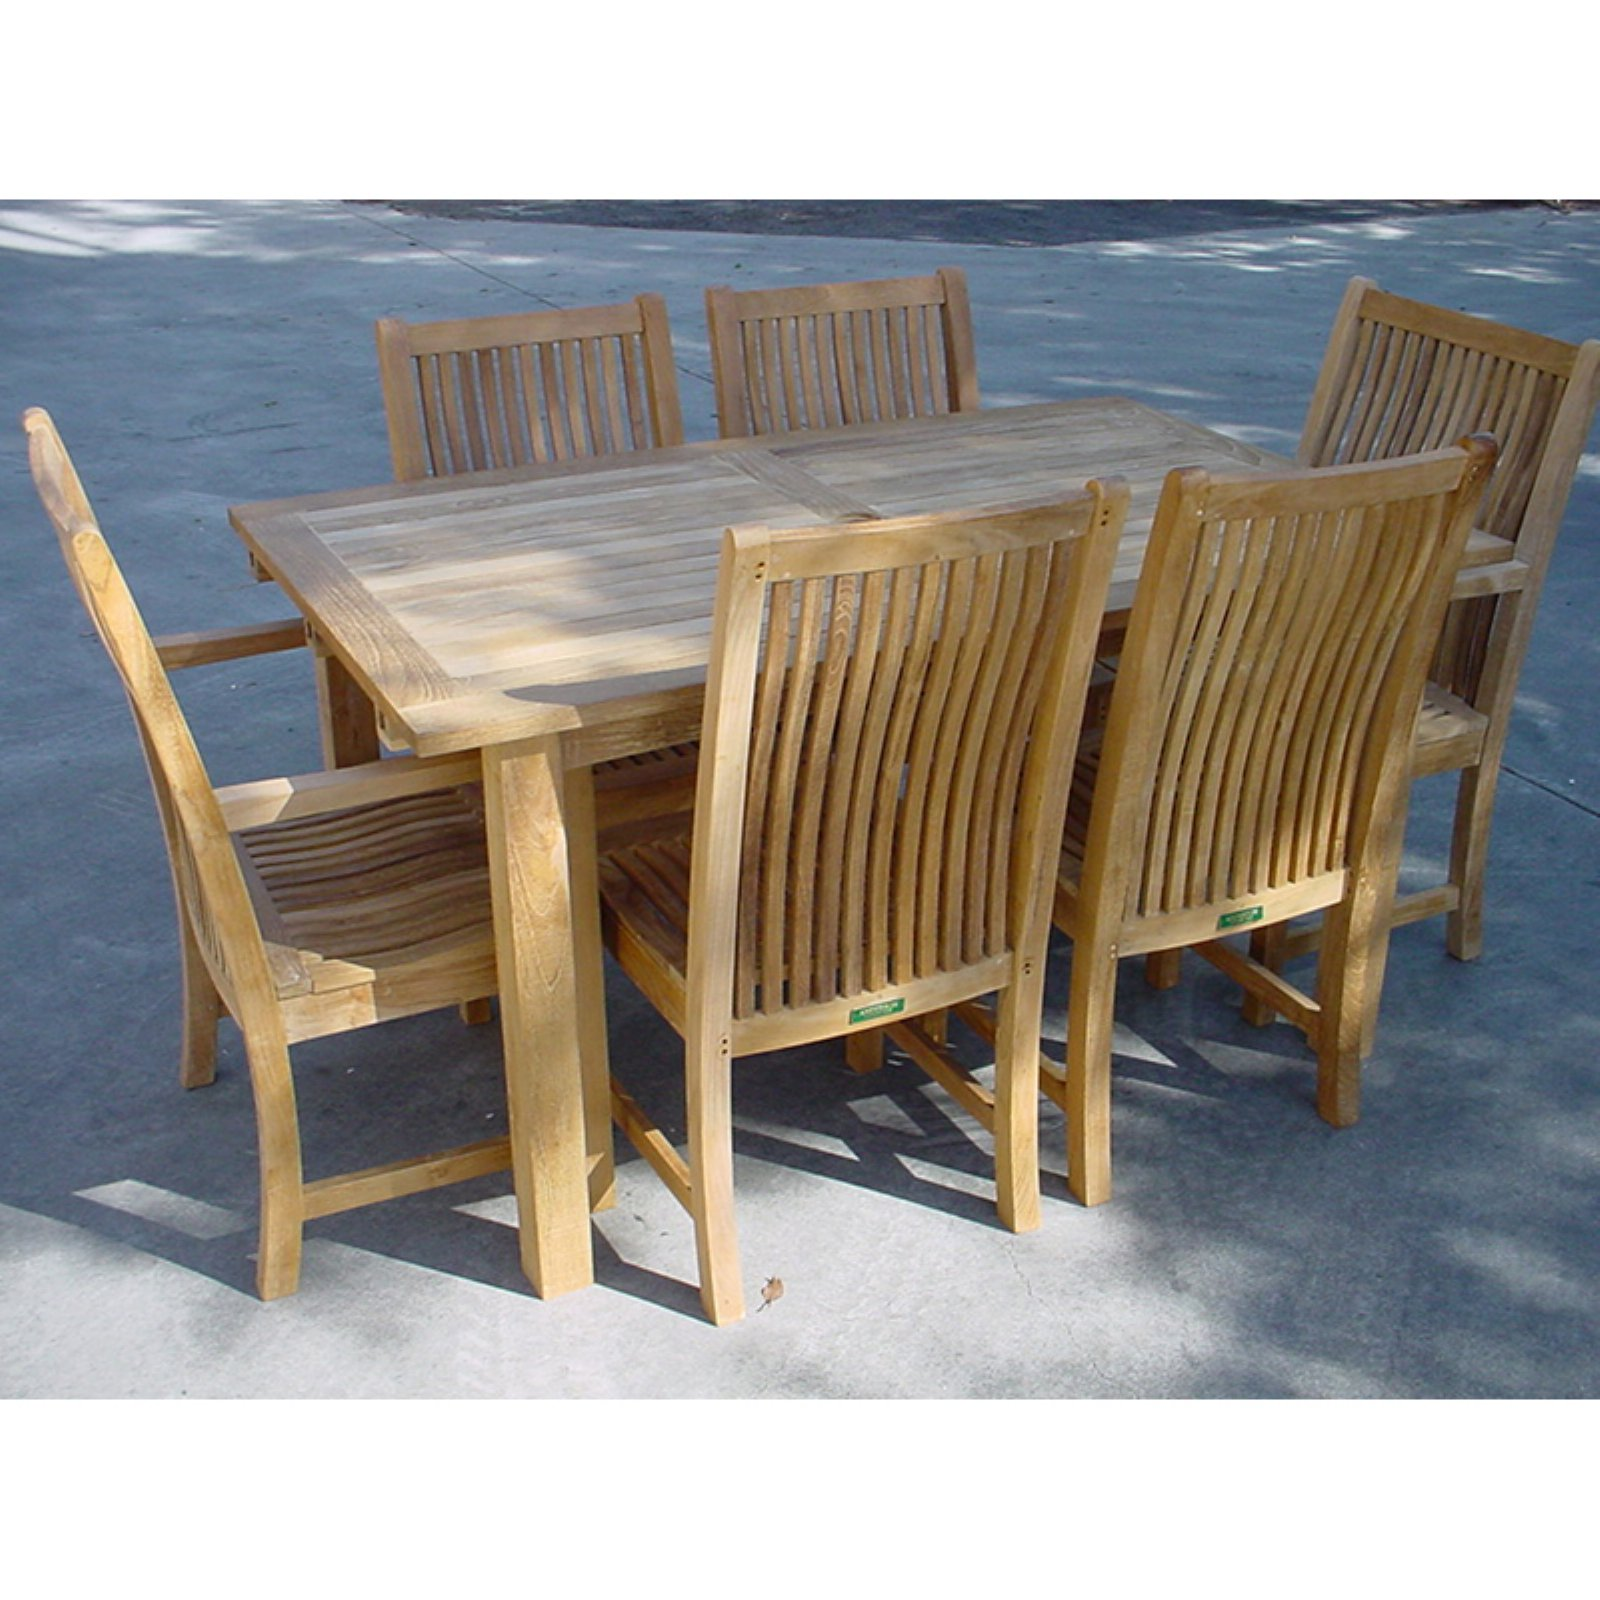 Anderson Teak Chicago 7 Piece Rectangle Patio Dining Room Set by Anderson